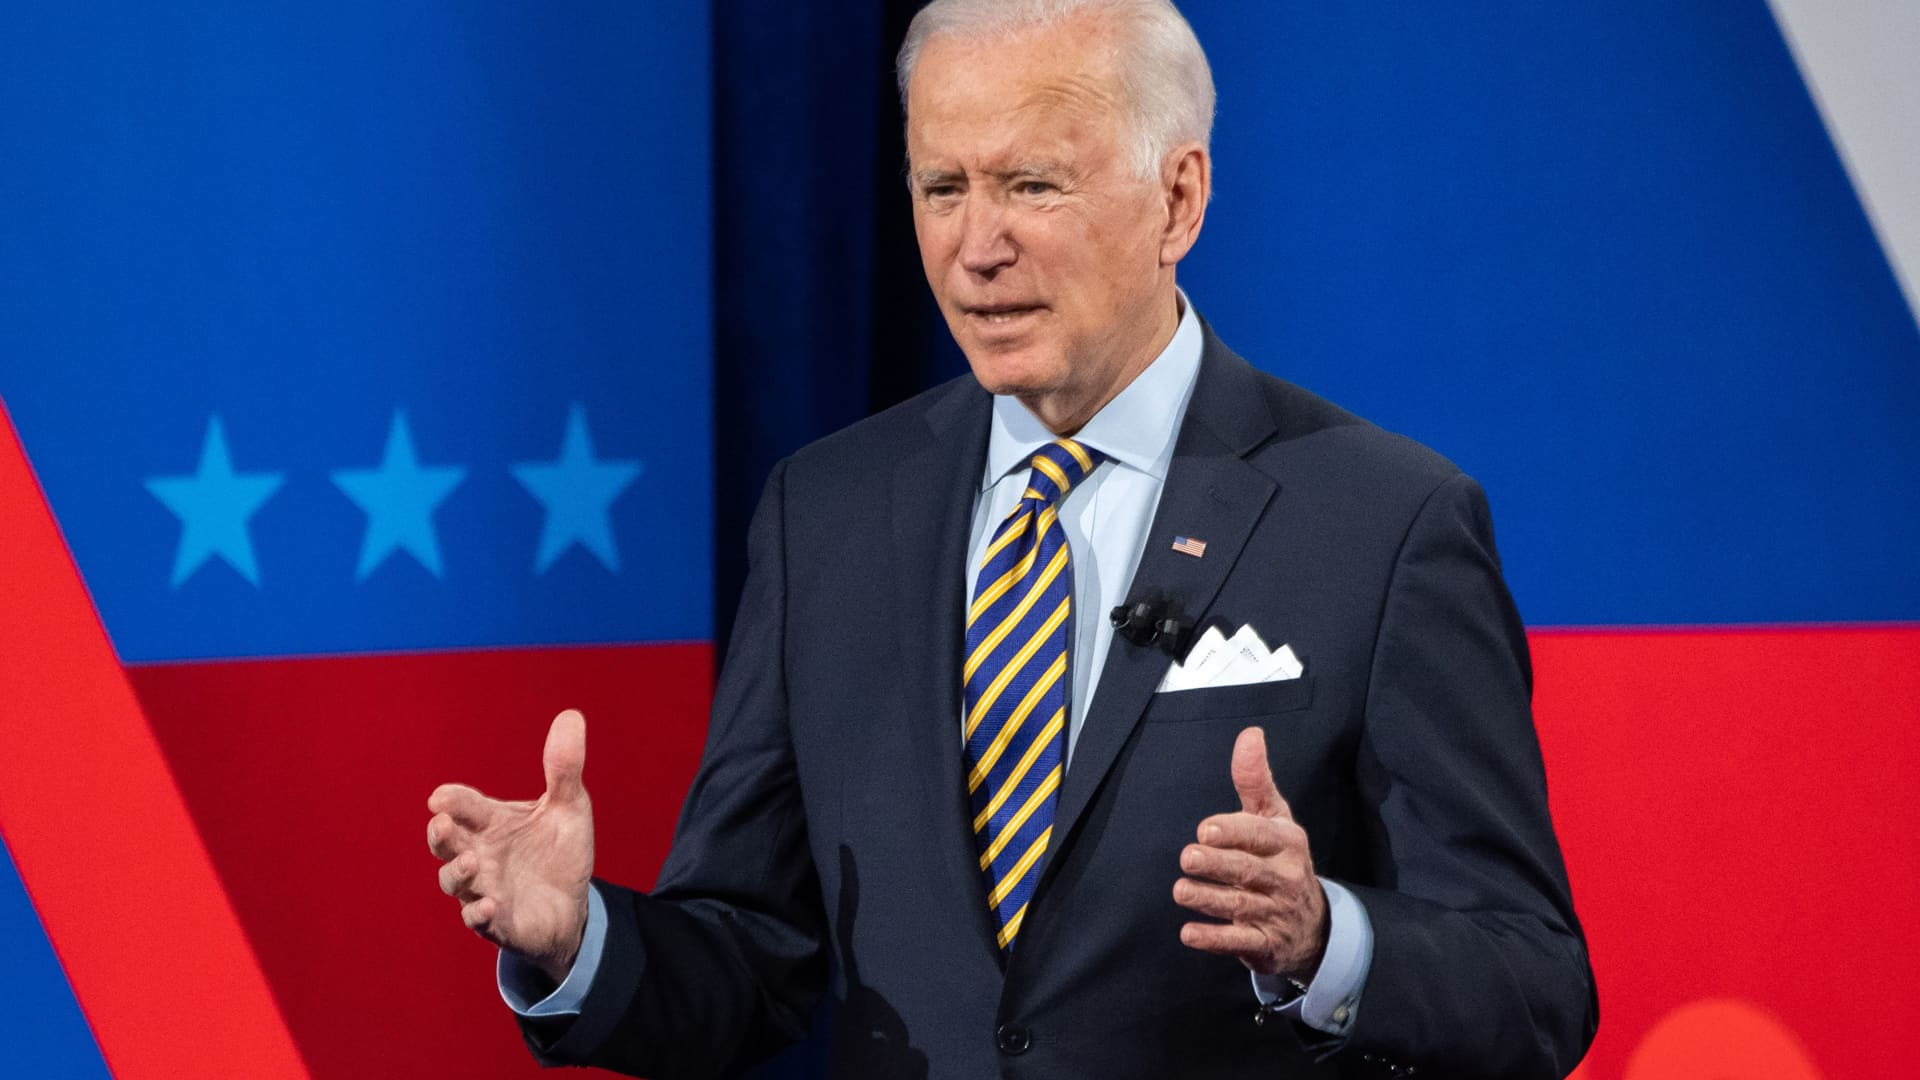 US President Joe Biden participates in a CNN town hall at the Pabst Theater in Milwaukee, Wisconsin, February 16, 2021.